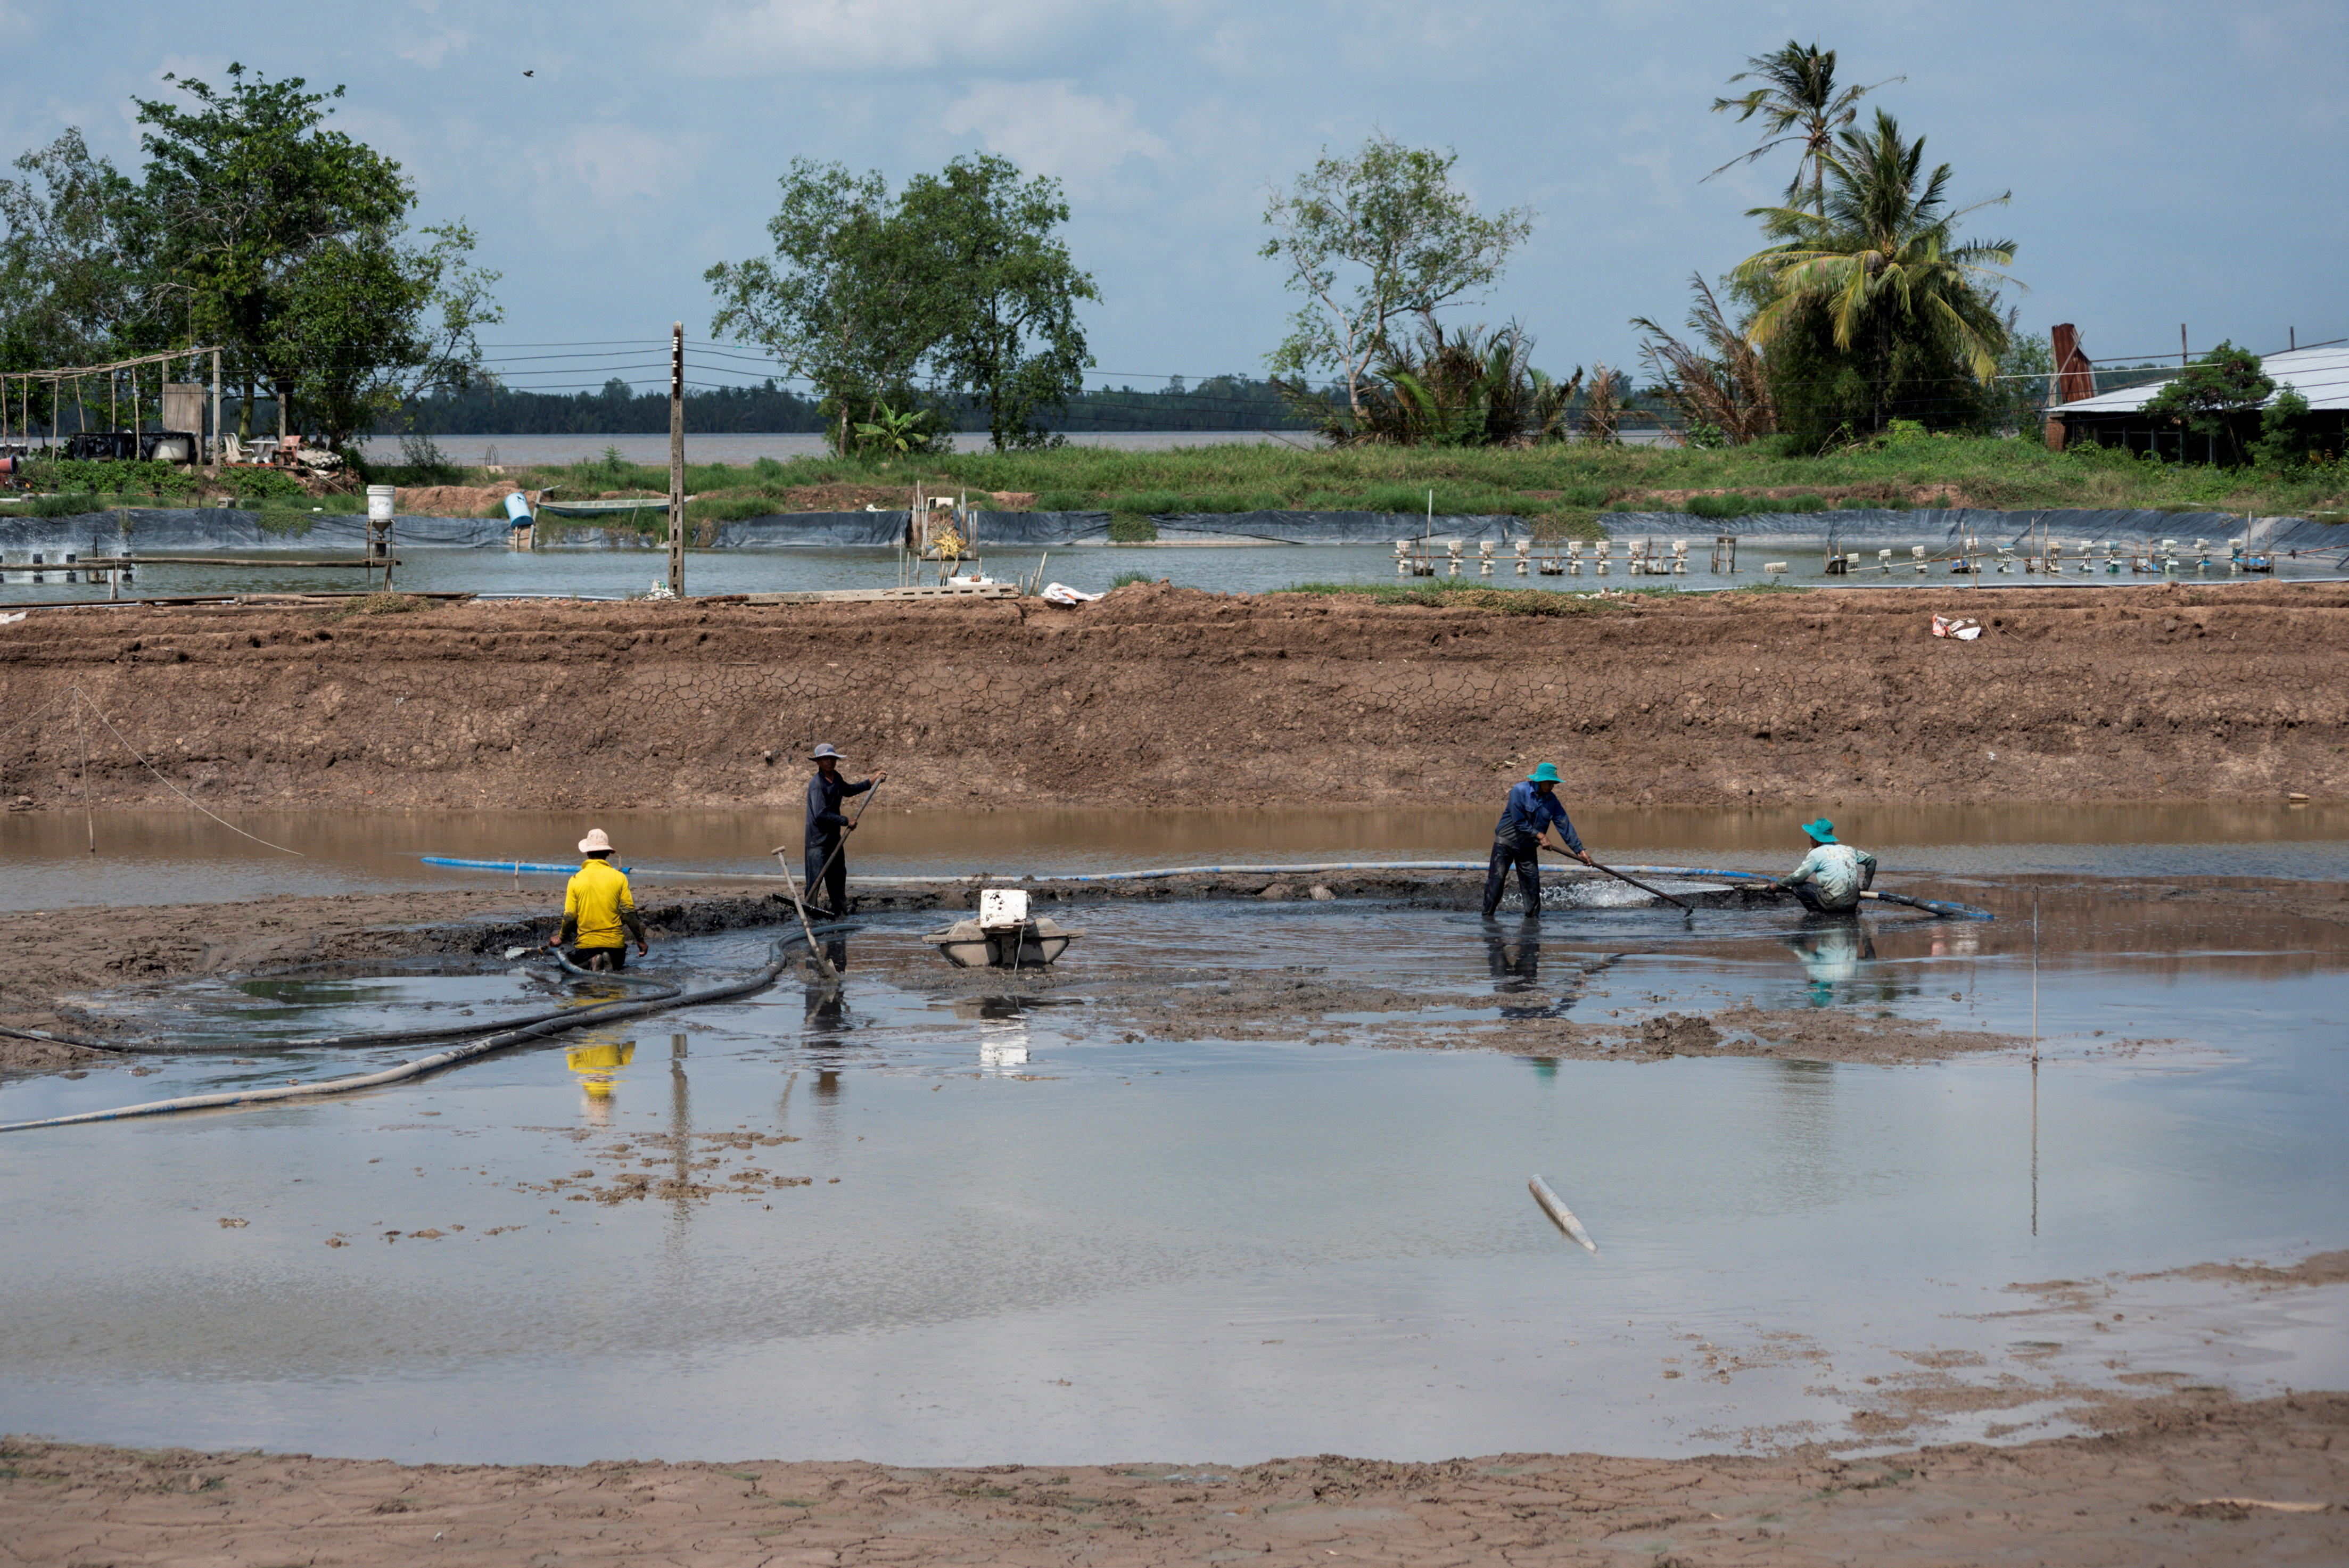 Farmers prepare former rice fields into pools to farm shrimps in Soc Trang province, Vietnam, April 28, 2021. Picture taken April 28, 2021. REUTERS/Thanh Hue/File Photo